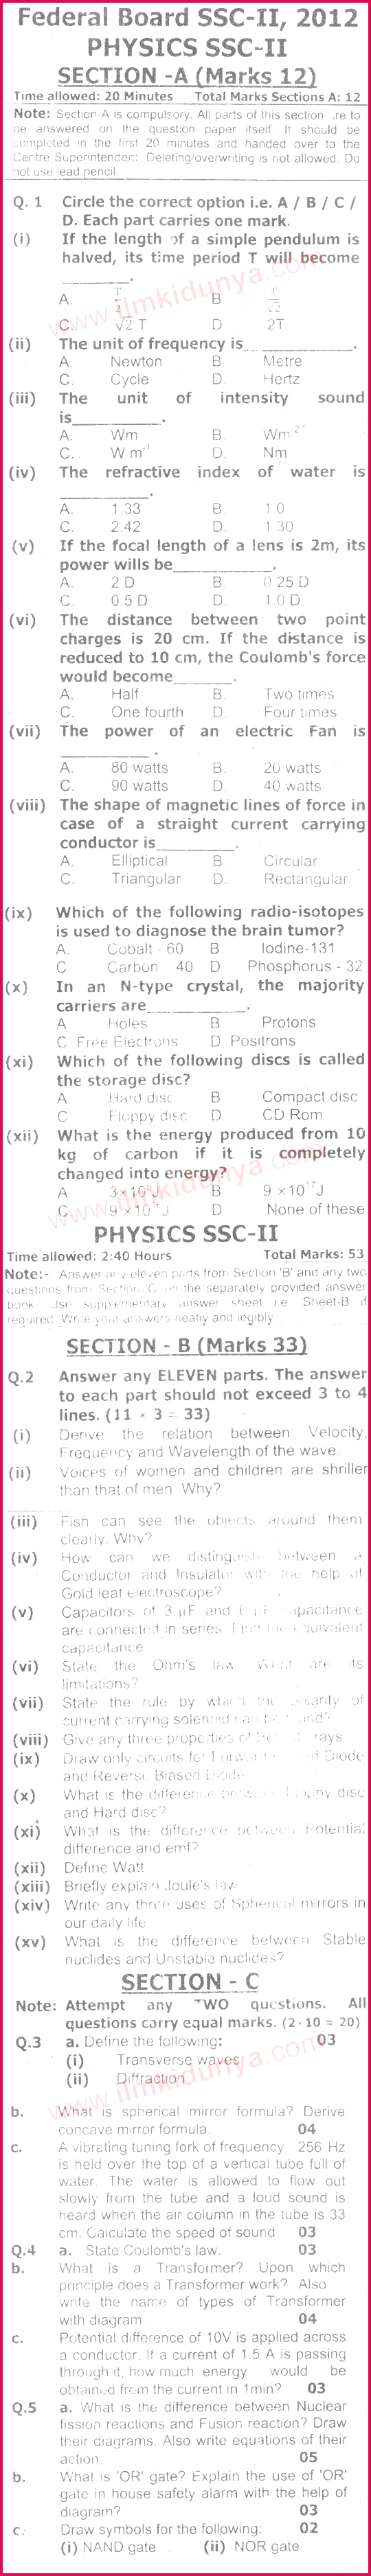 Federal Board Physics 10th Class Past Paper 2012